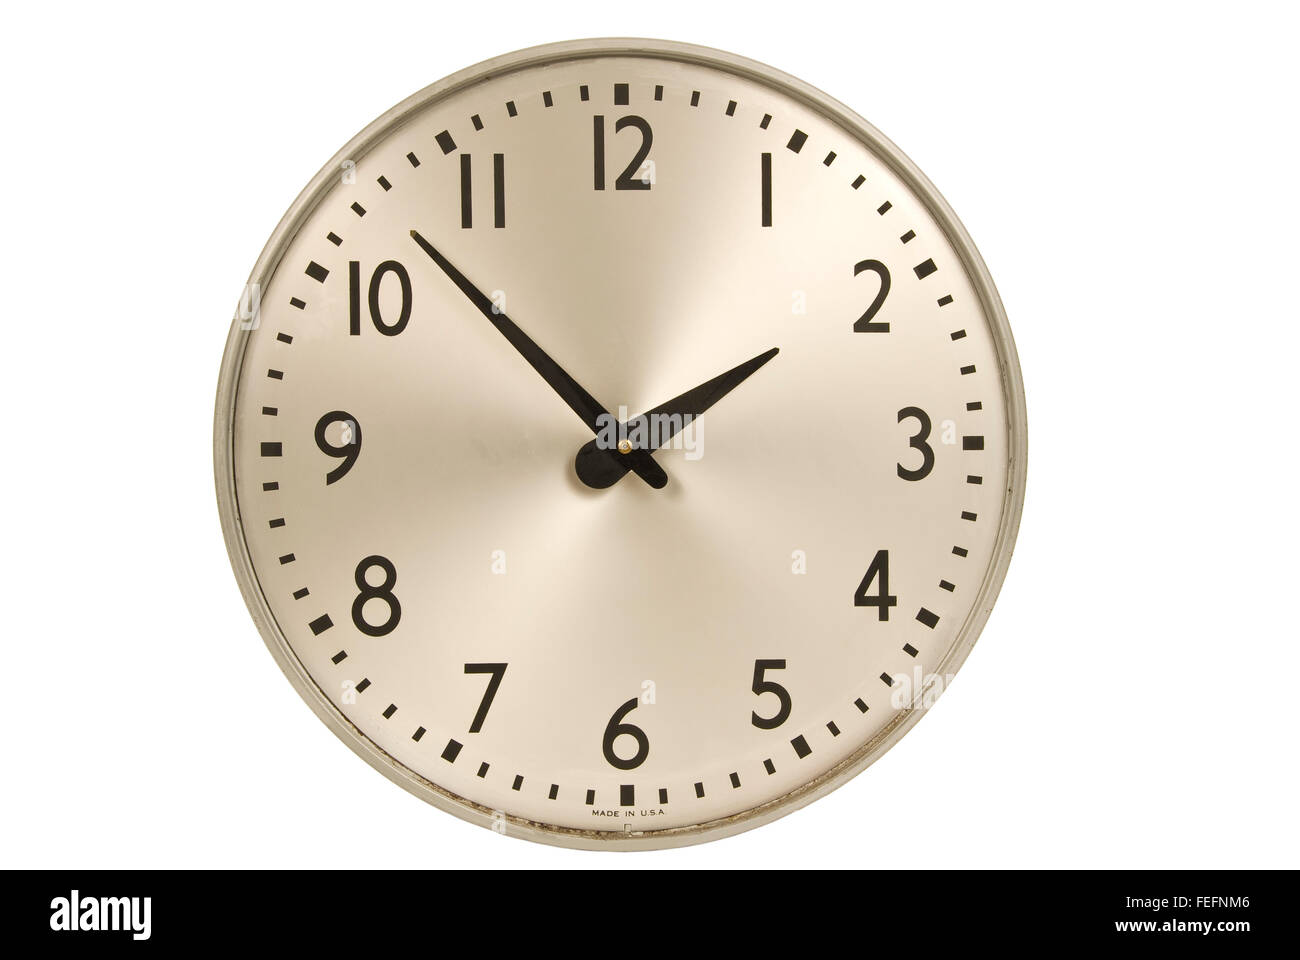 Old Industrial Wall Clock - Stock Image